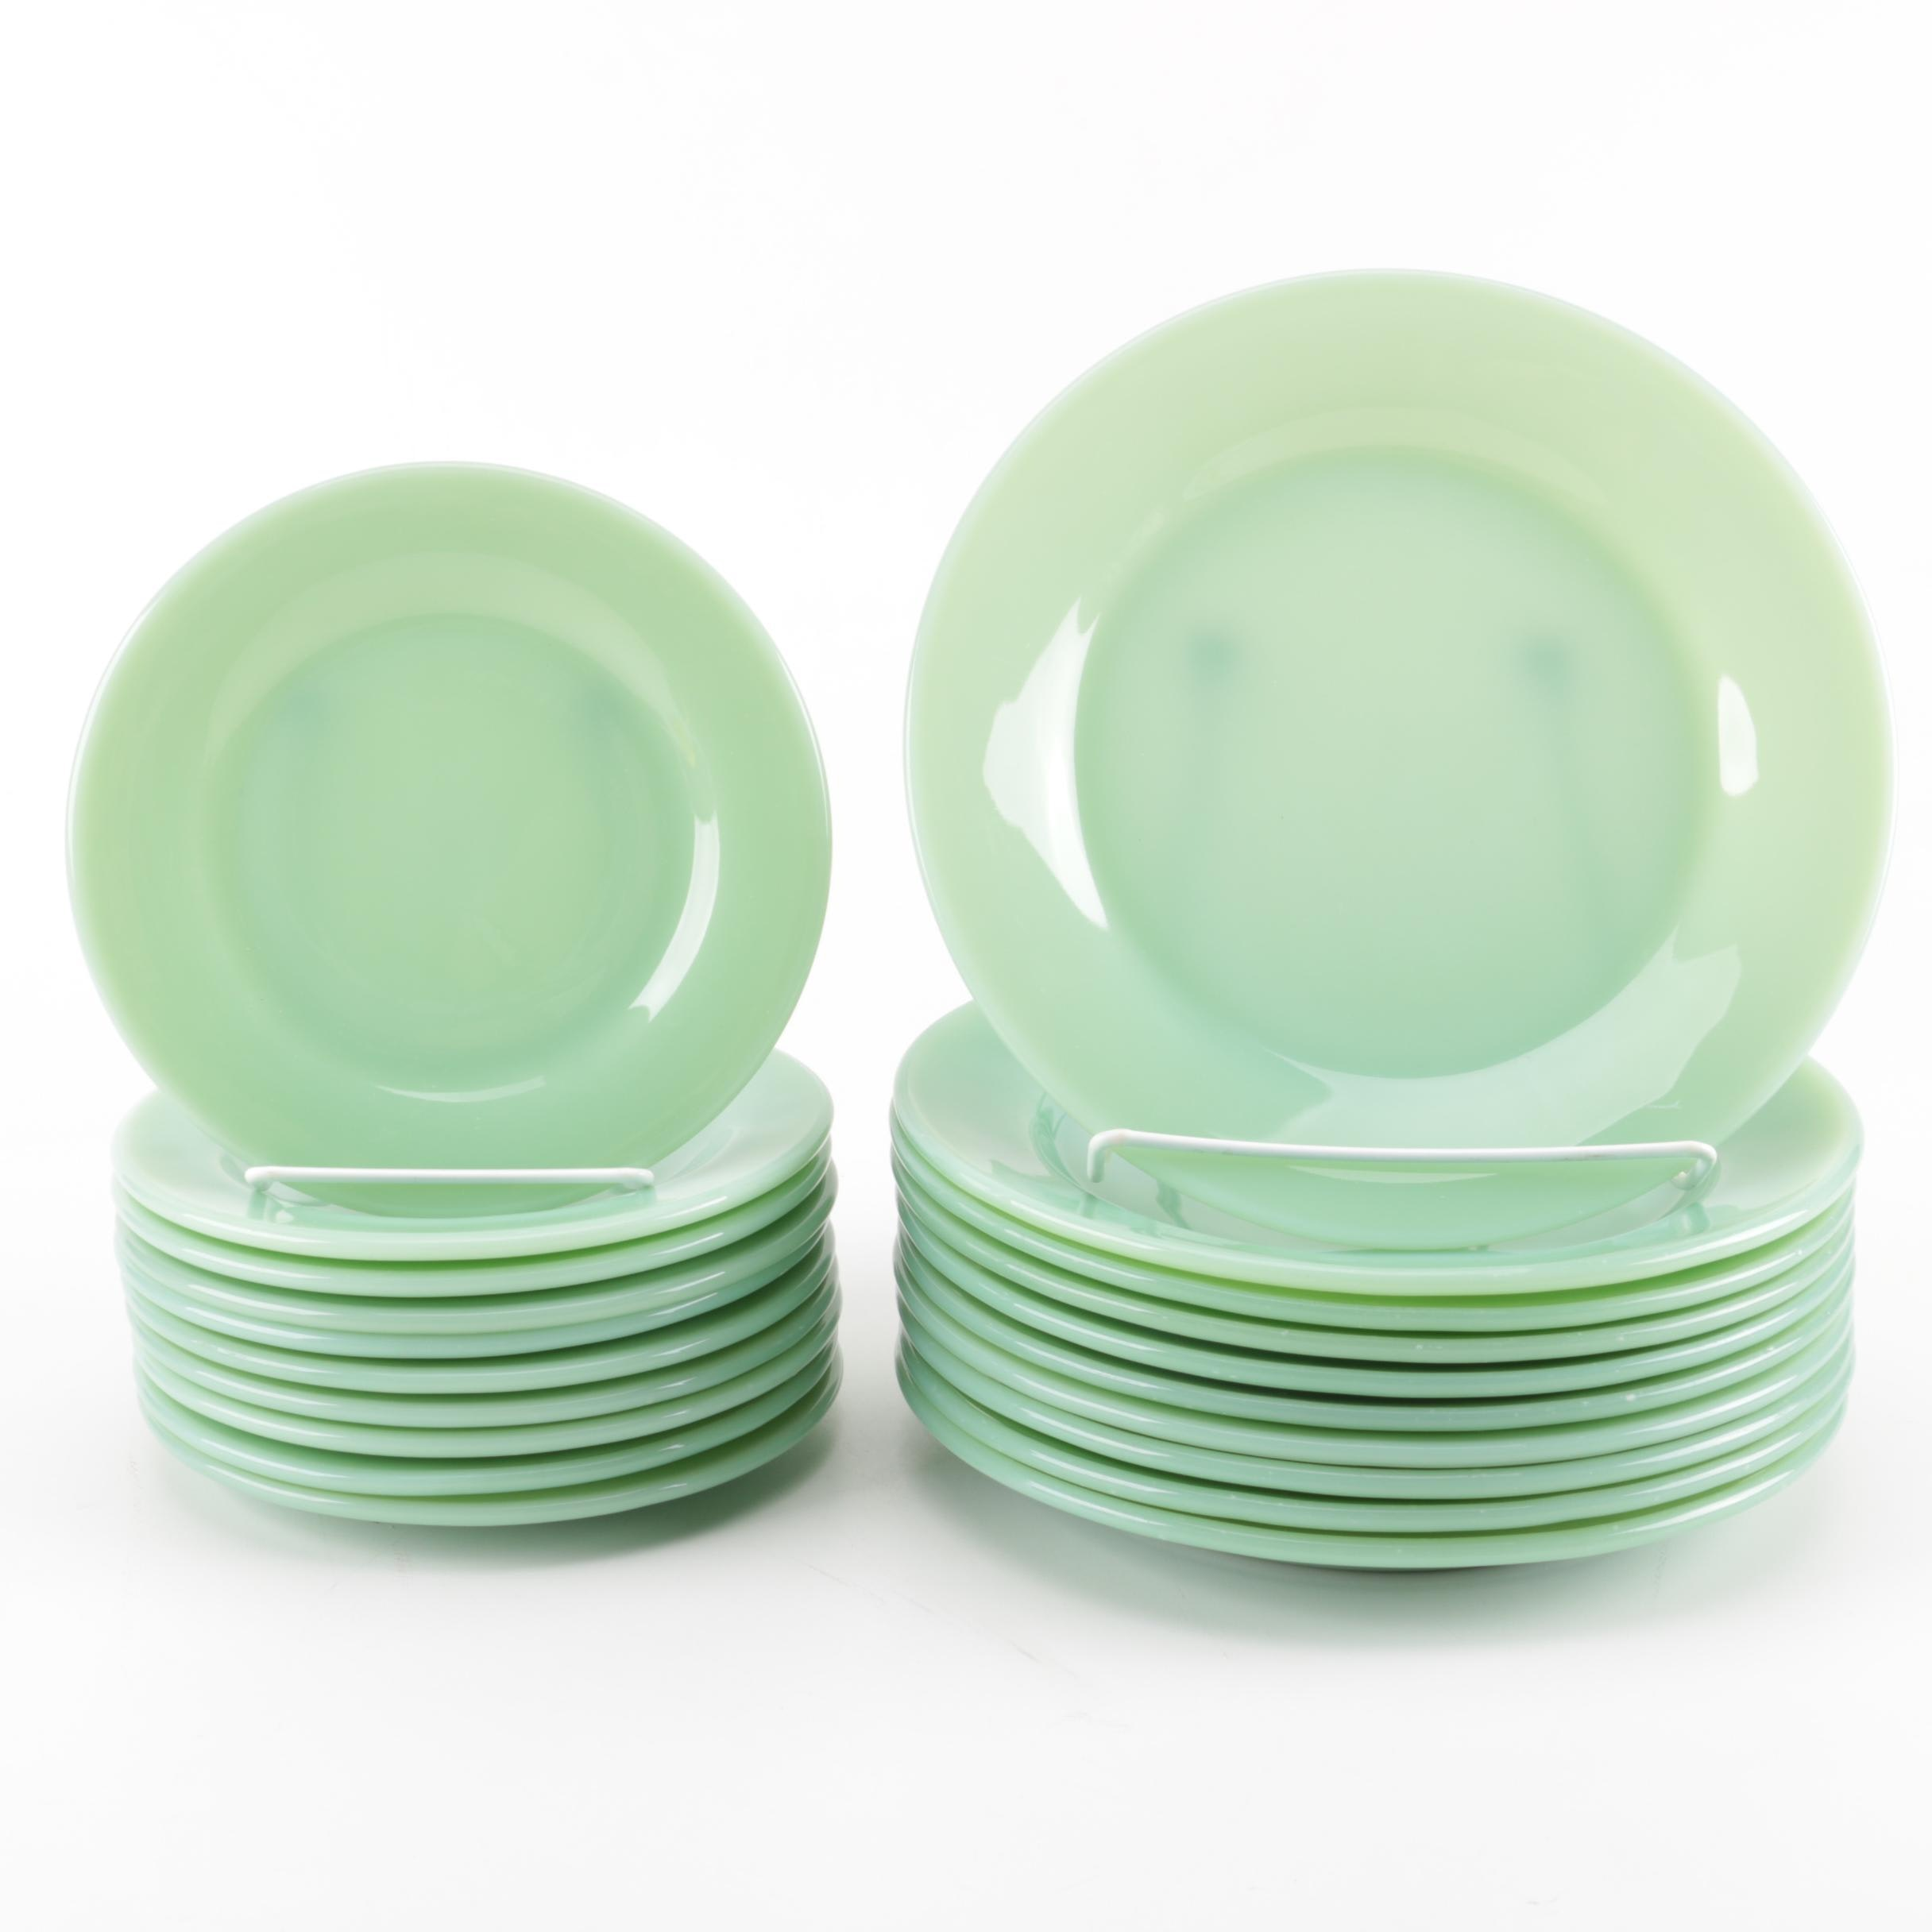 Fire-King Jadeite Dinner and Salad Plates ...  sc 1 st  EBTH.com & Fire-King Jadeite Dinner and Salad Plates : EBTH